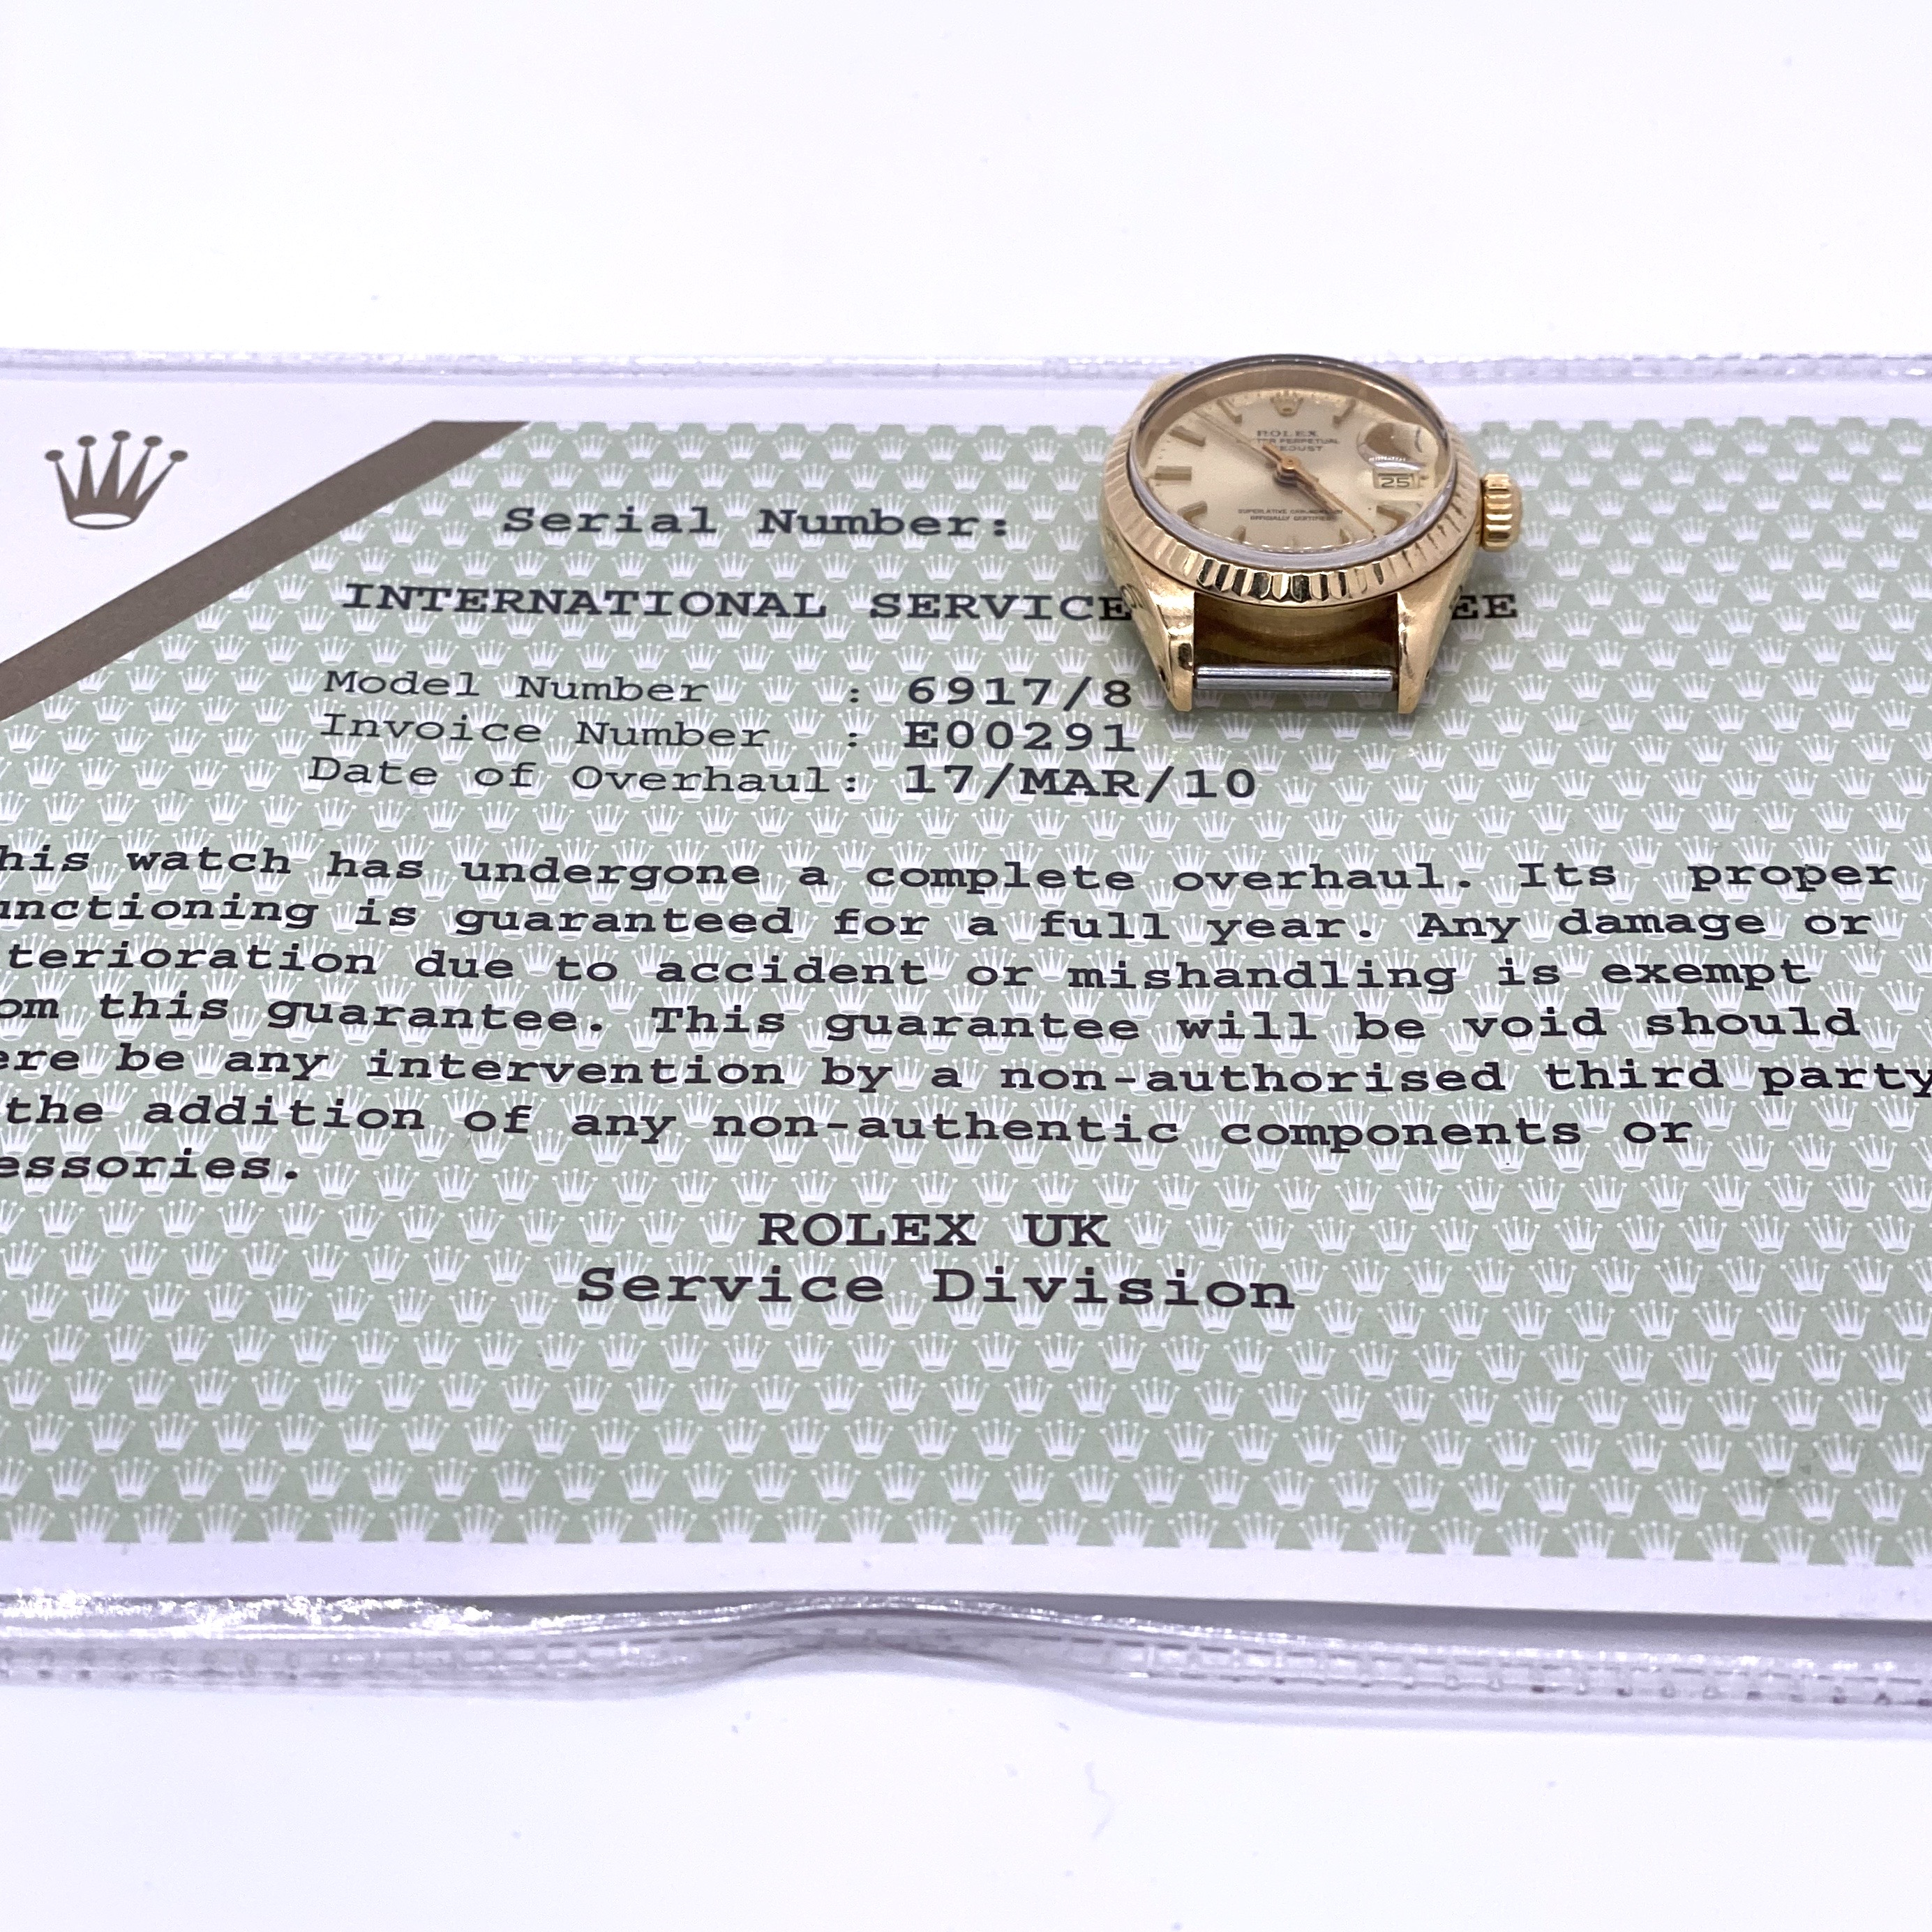 Lot 25 - Rolex Datejust ref 6917/8 18ct with service papers